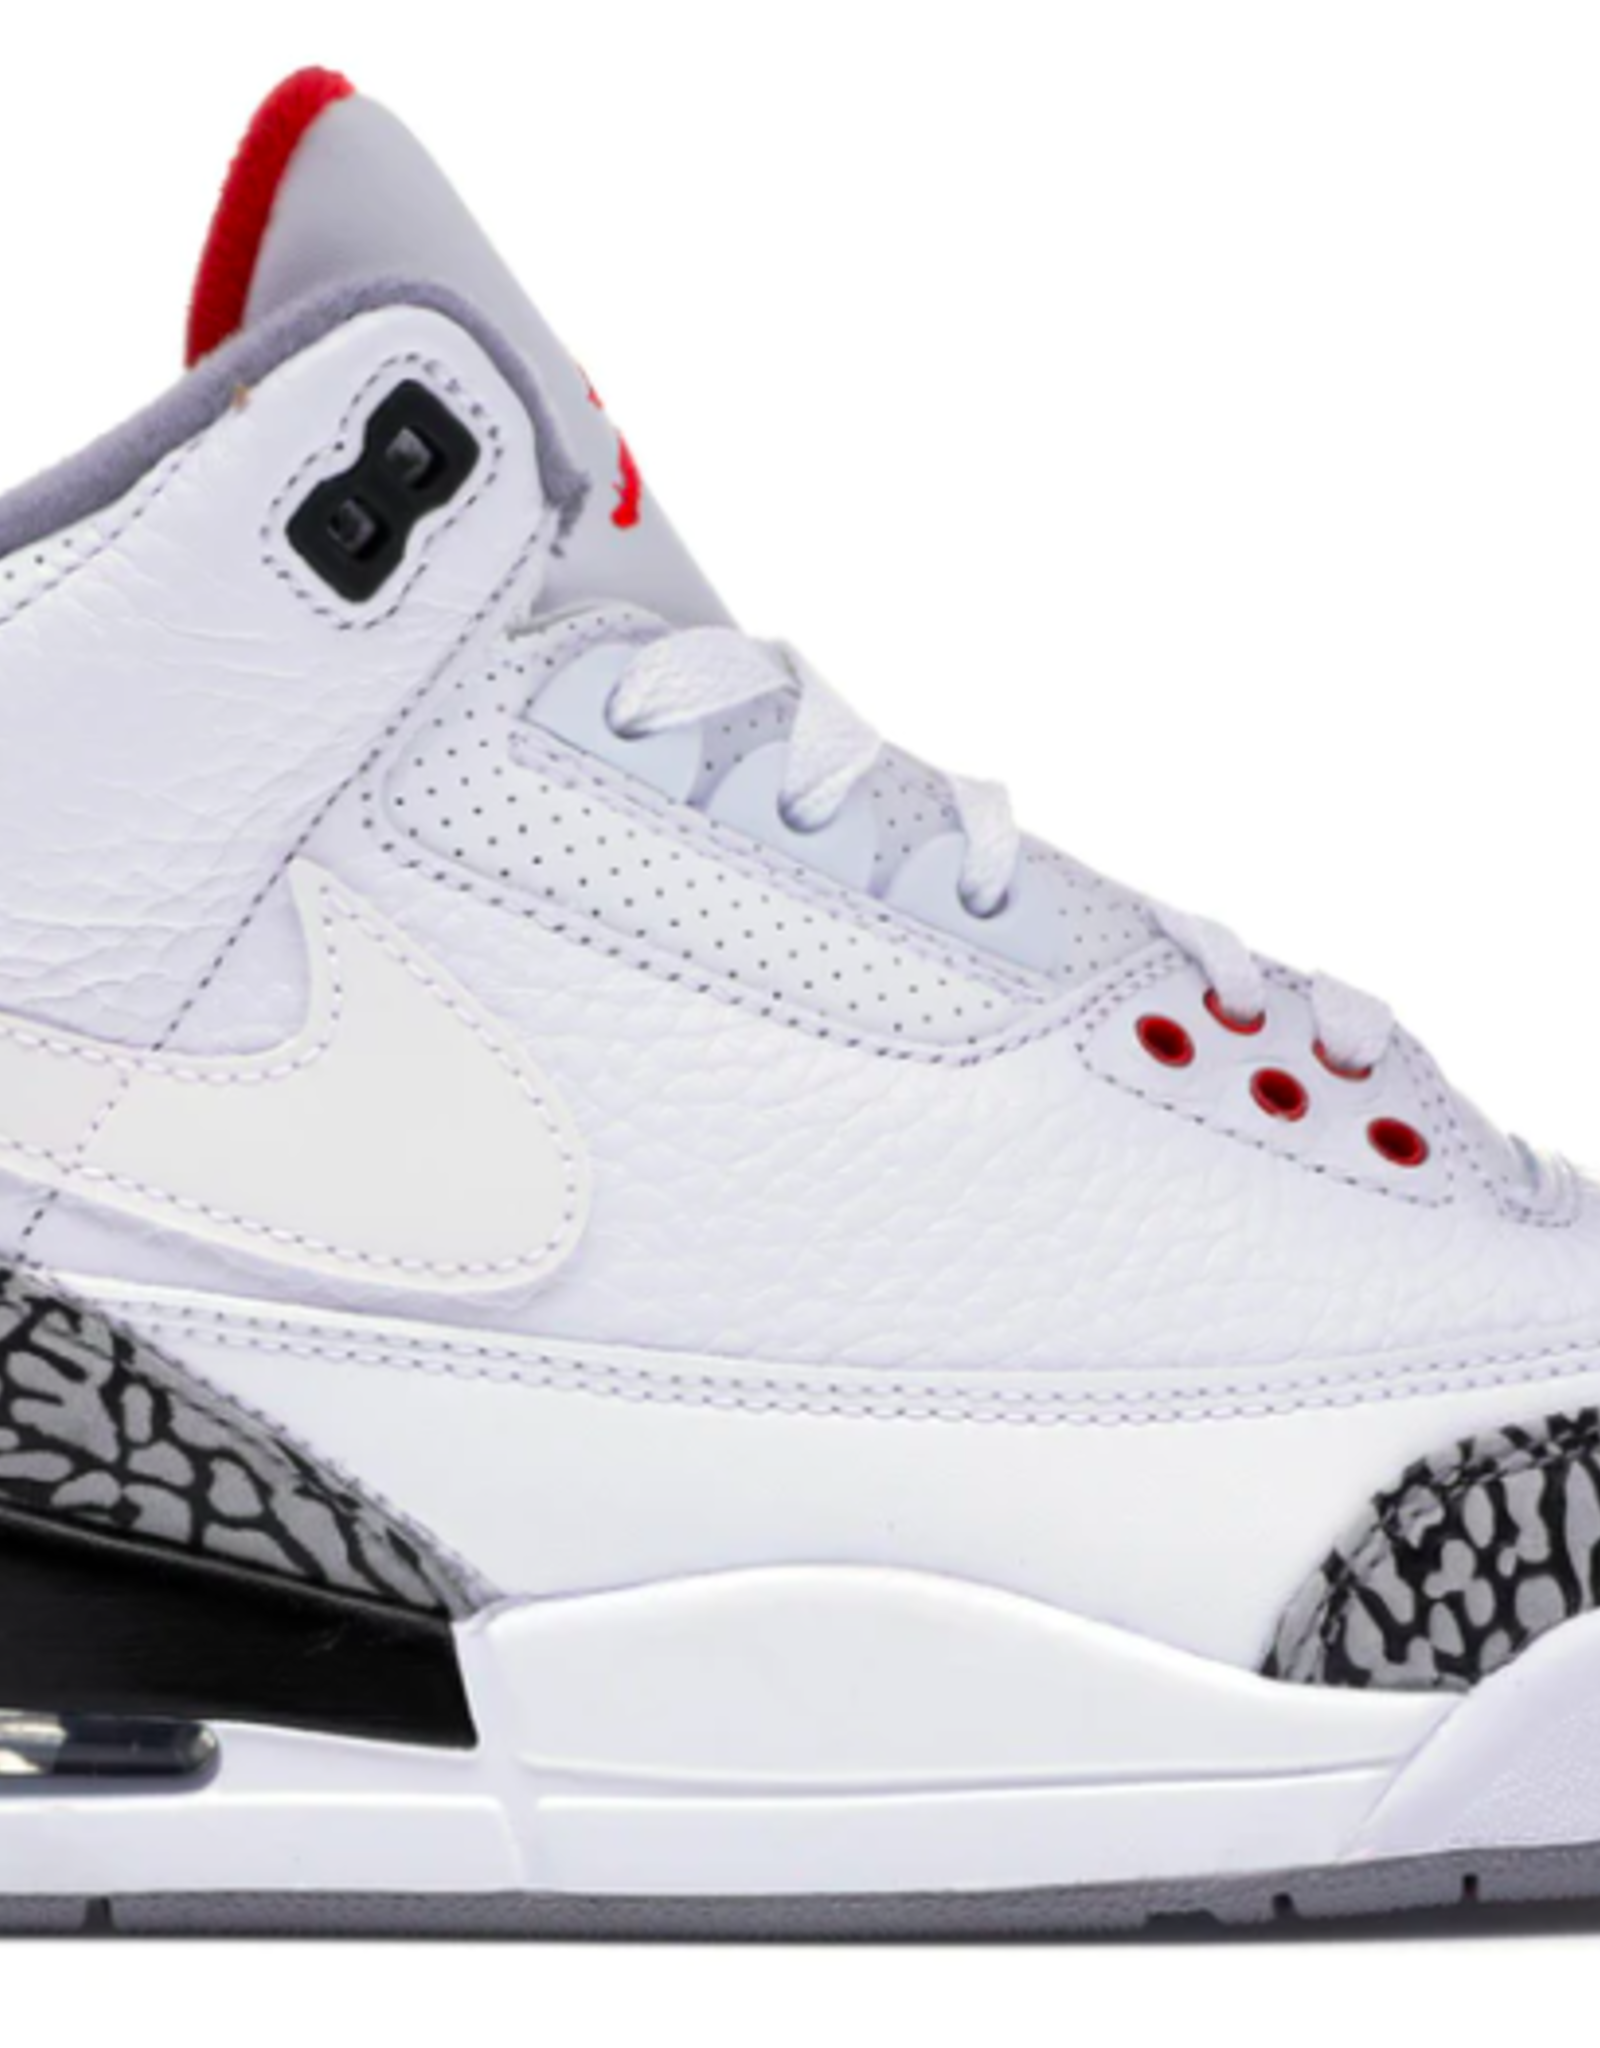 JORDAN Air Jordan 3 JTH Super Bowl